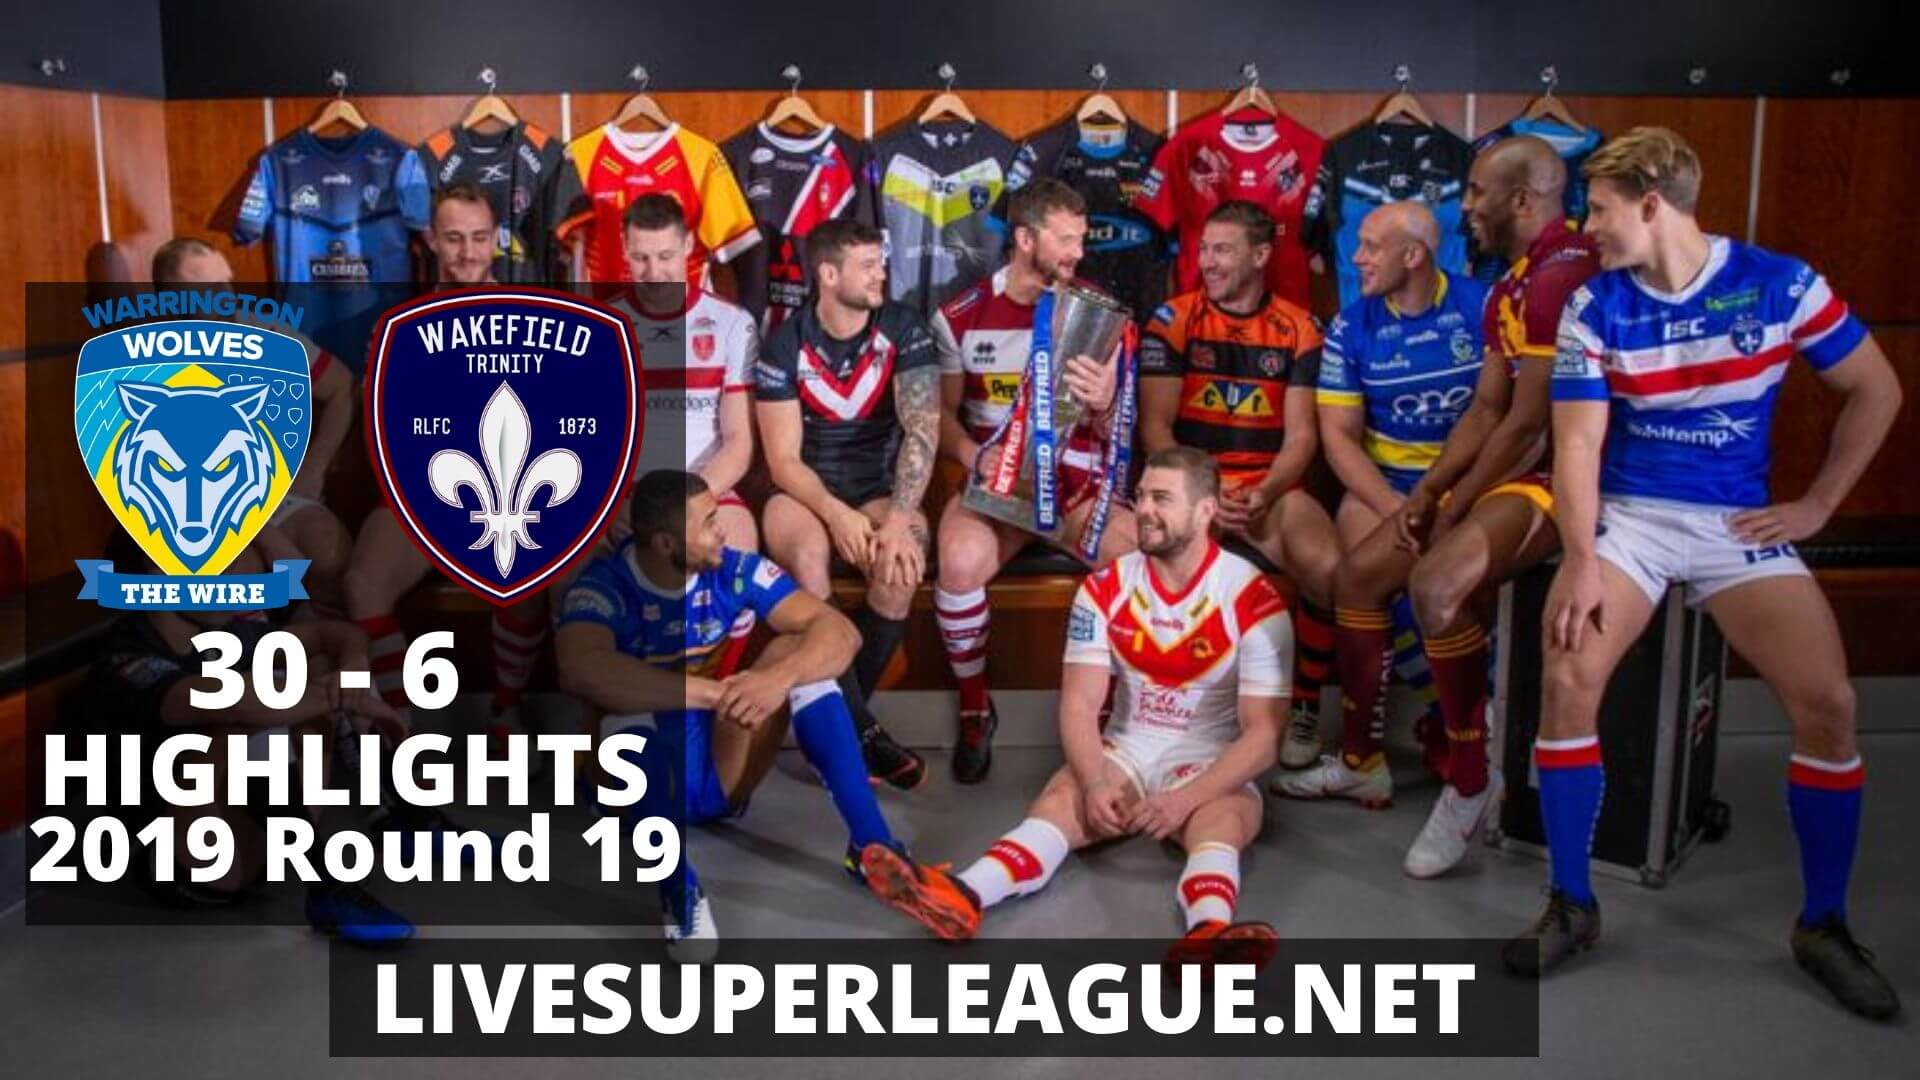 Warrington Wolves Vs Wakefield Trinity Highlights 2019 Round 19